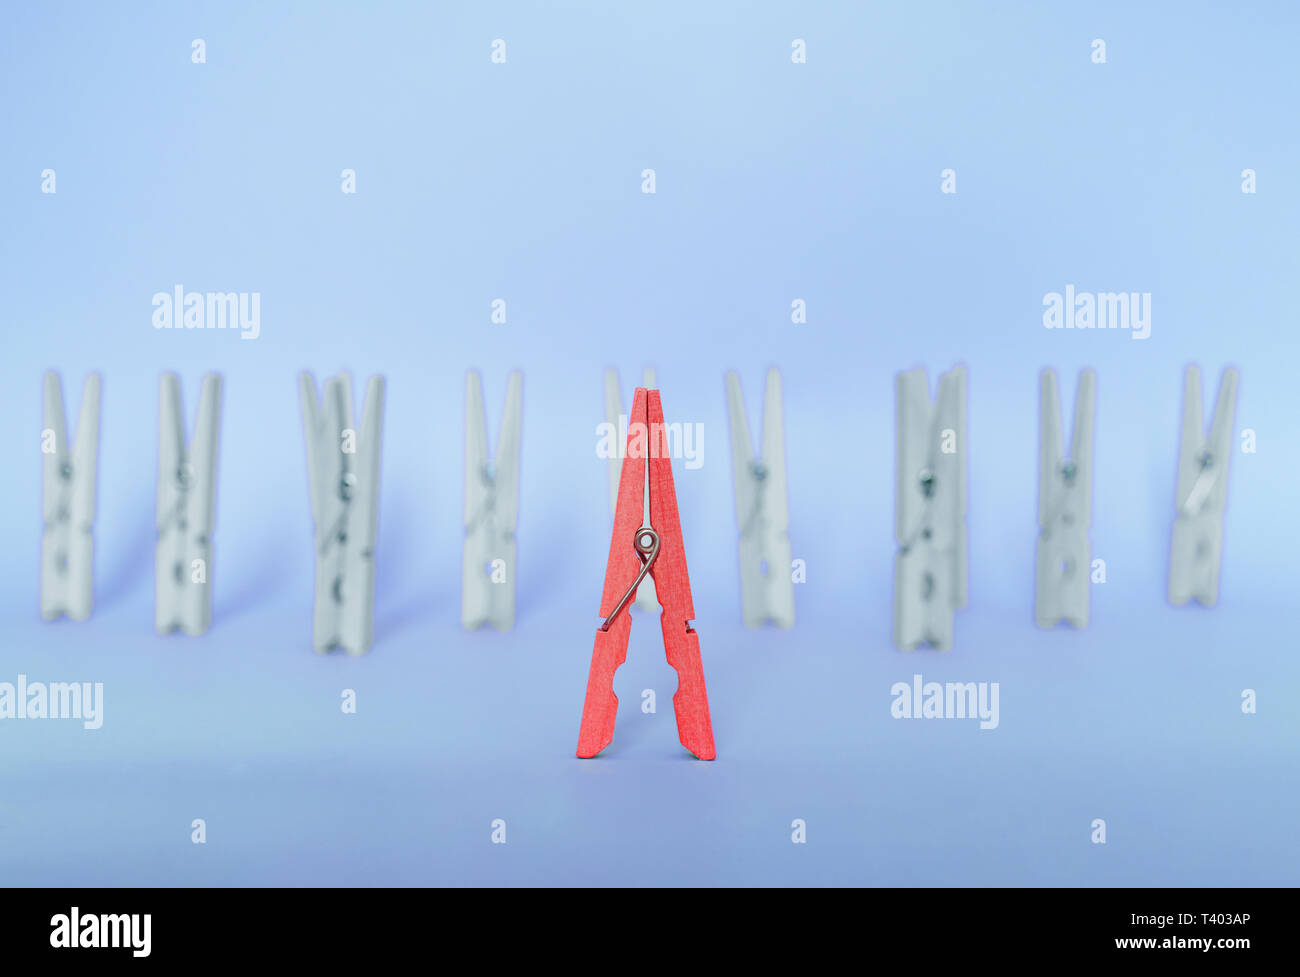 Unique, individuality, outstanding,leadership and think different concept. Red wooden clip stand out of colorless clips on blue backgrounds Stock Photo